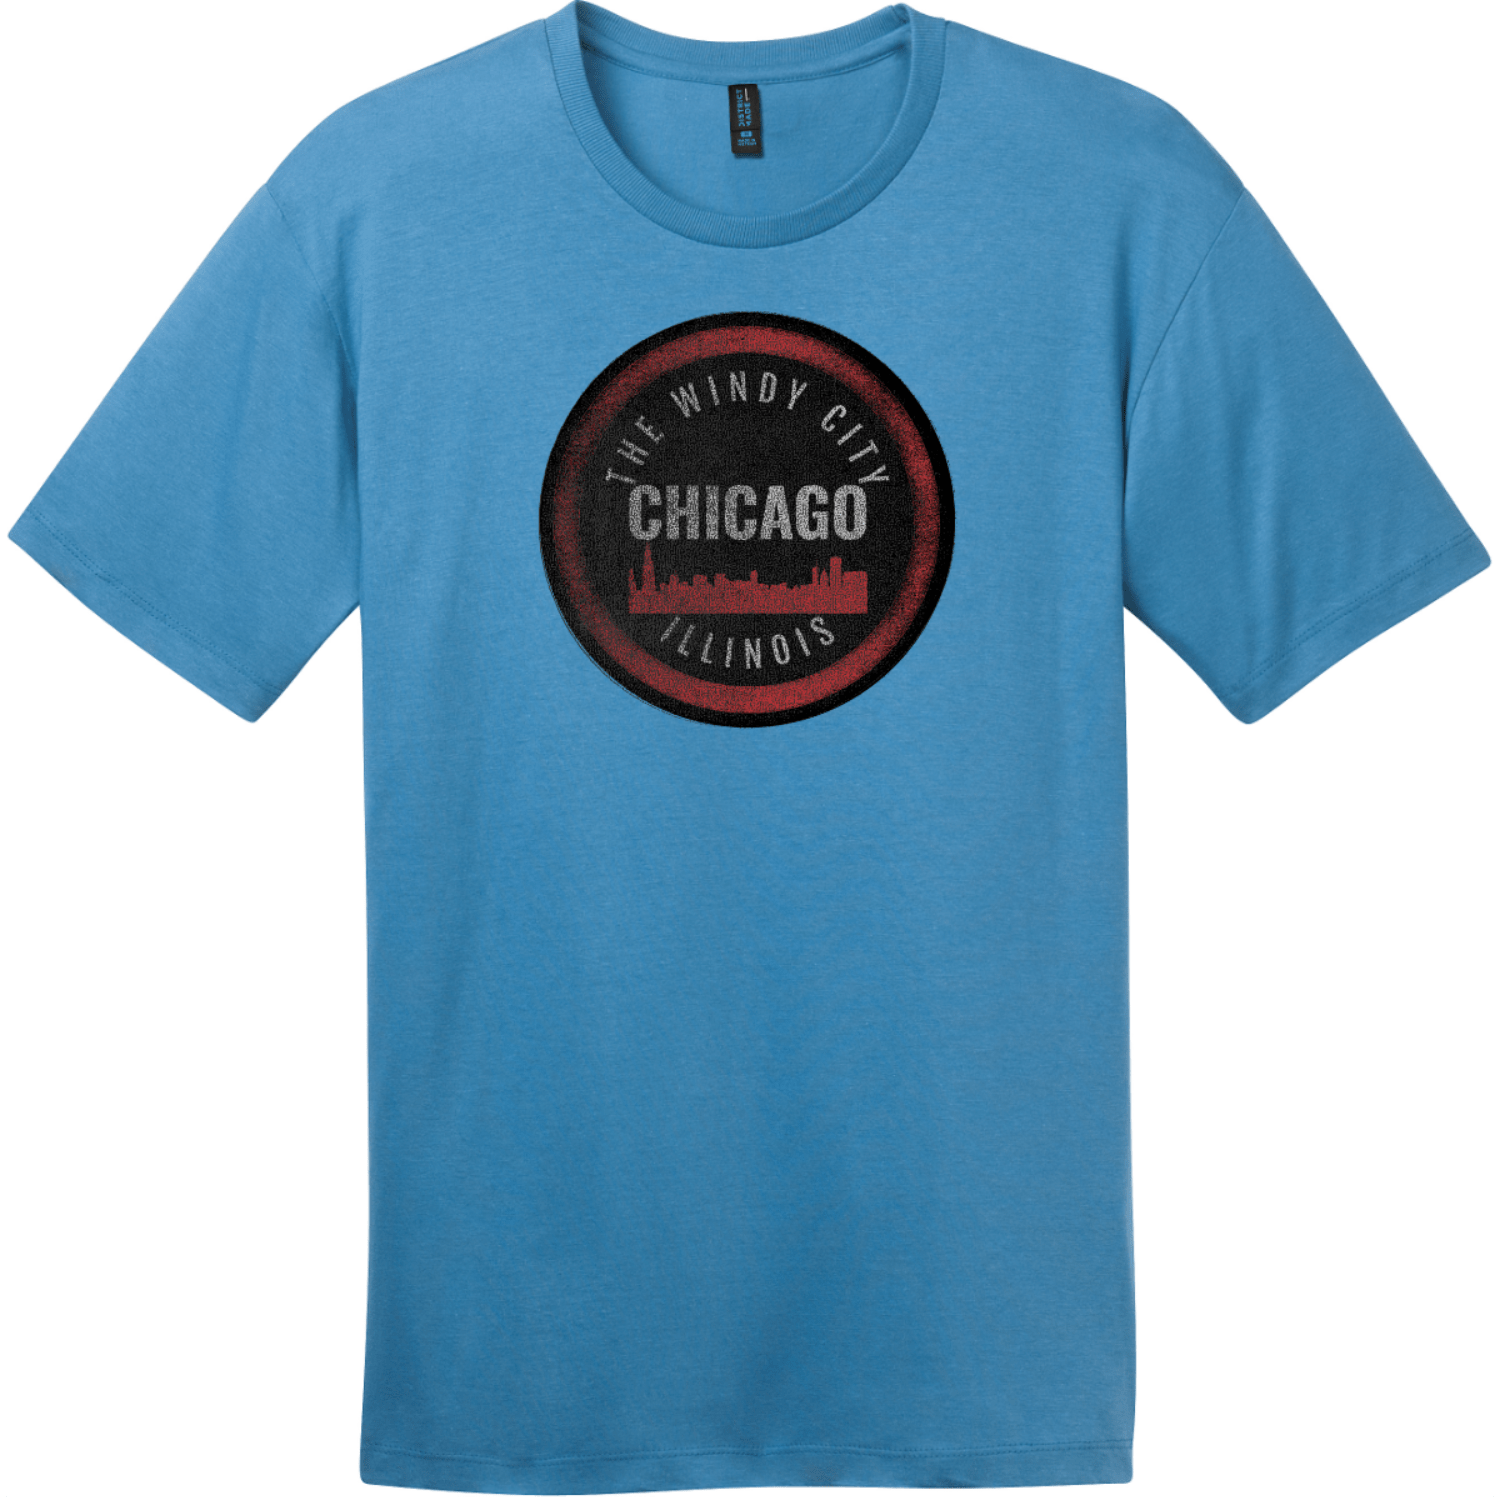 Chicago Illinois The Windy City T-Shirt Clean Denim District Perfect Weight Tee DT104